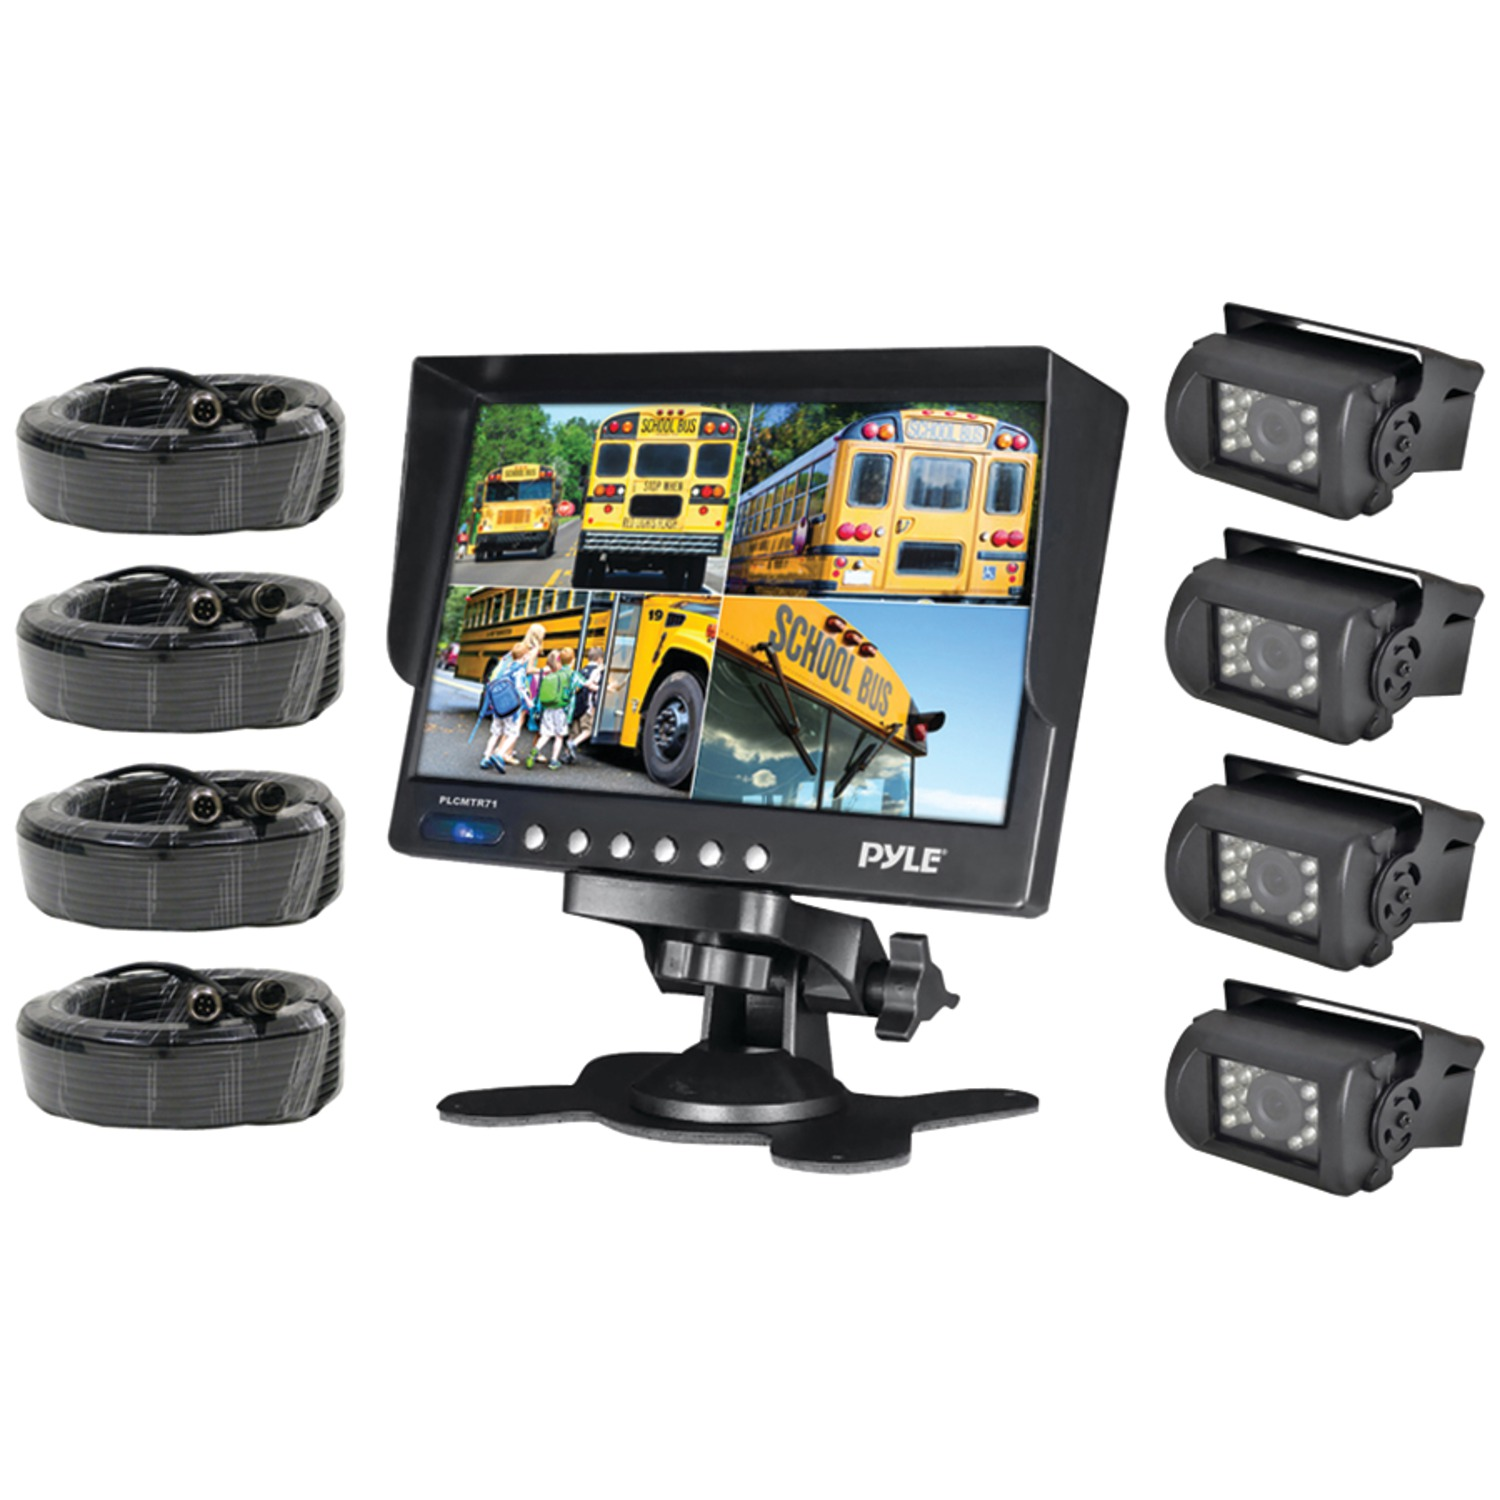 pyle plcmtr74 weatherproof backup camera system with 7 inch lcd color monitor 4 ir night. Black Bedroom Furniture Sets. Home Design Ideas